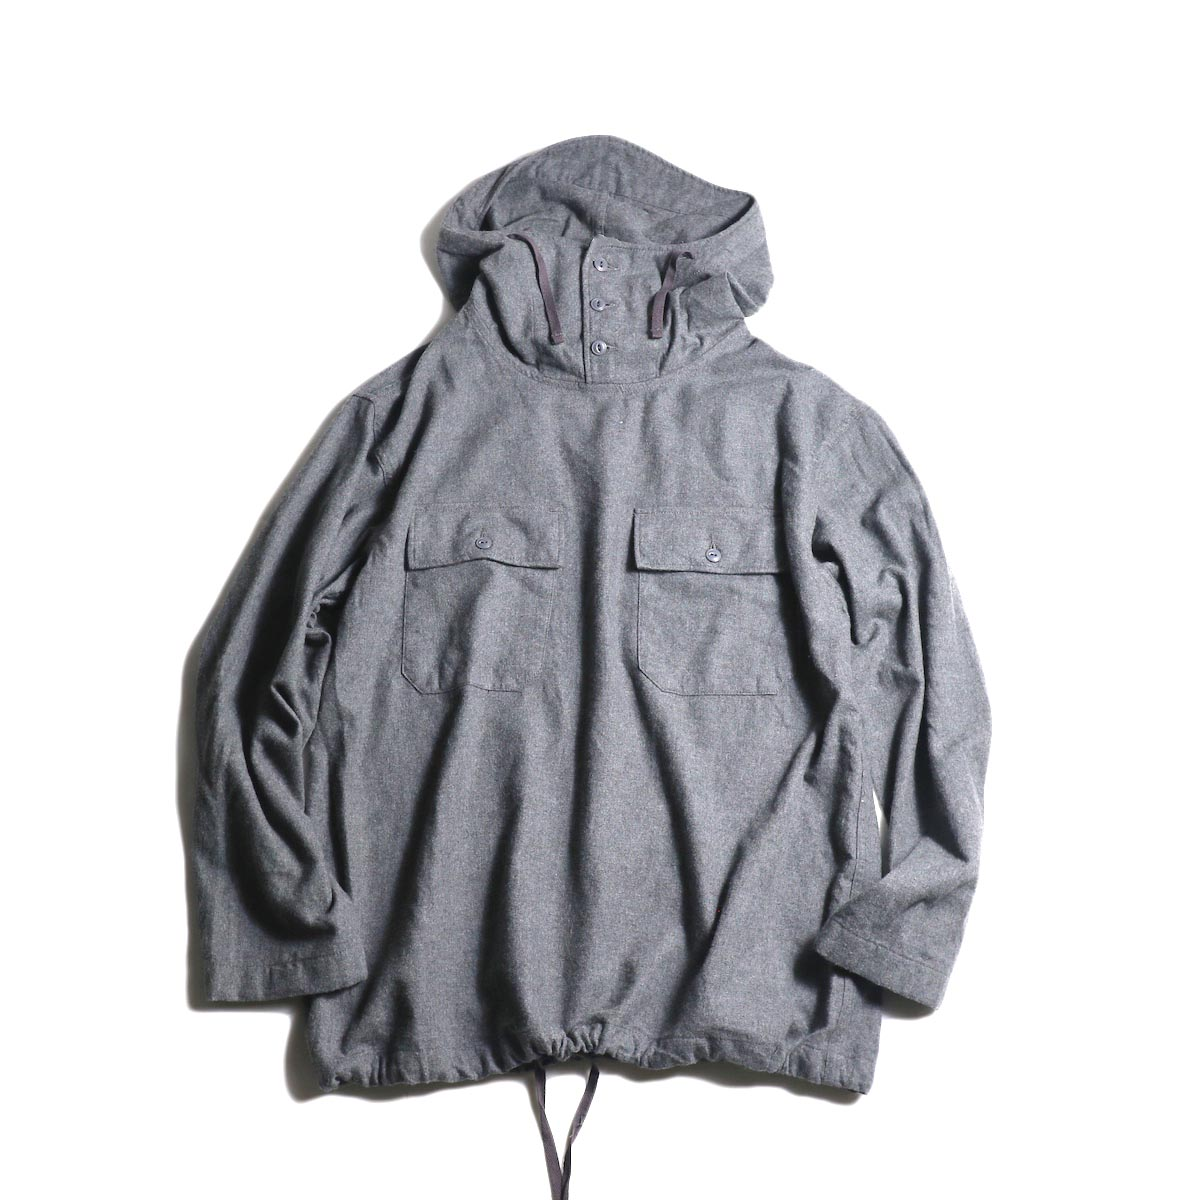 Engineered Garments / Cagoule Shirt -Brushed Twill (Dk.Gray)正面